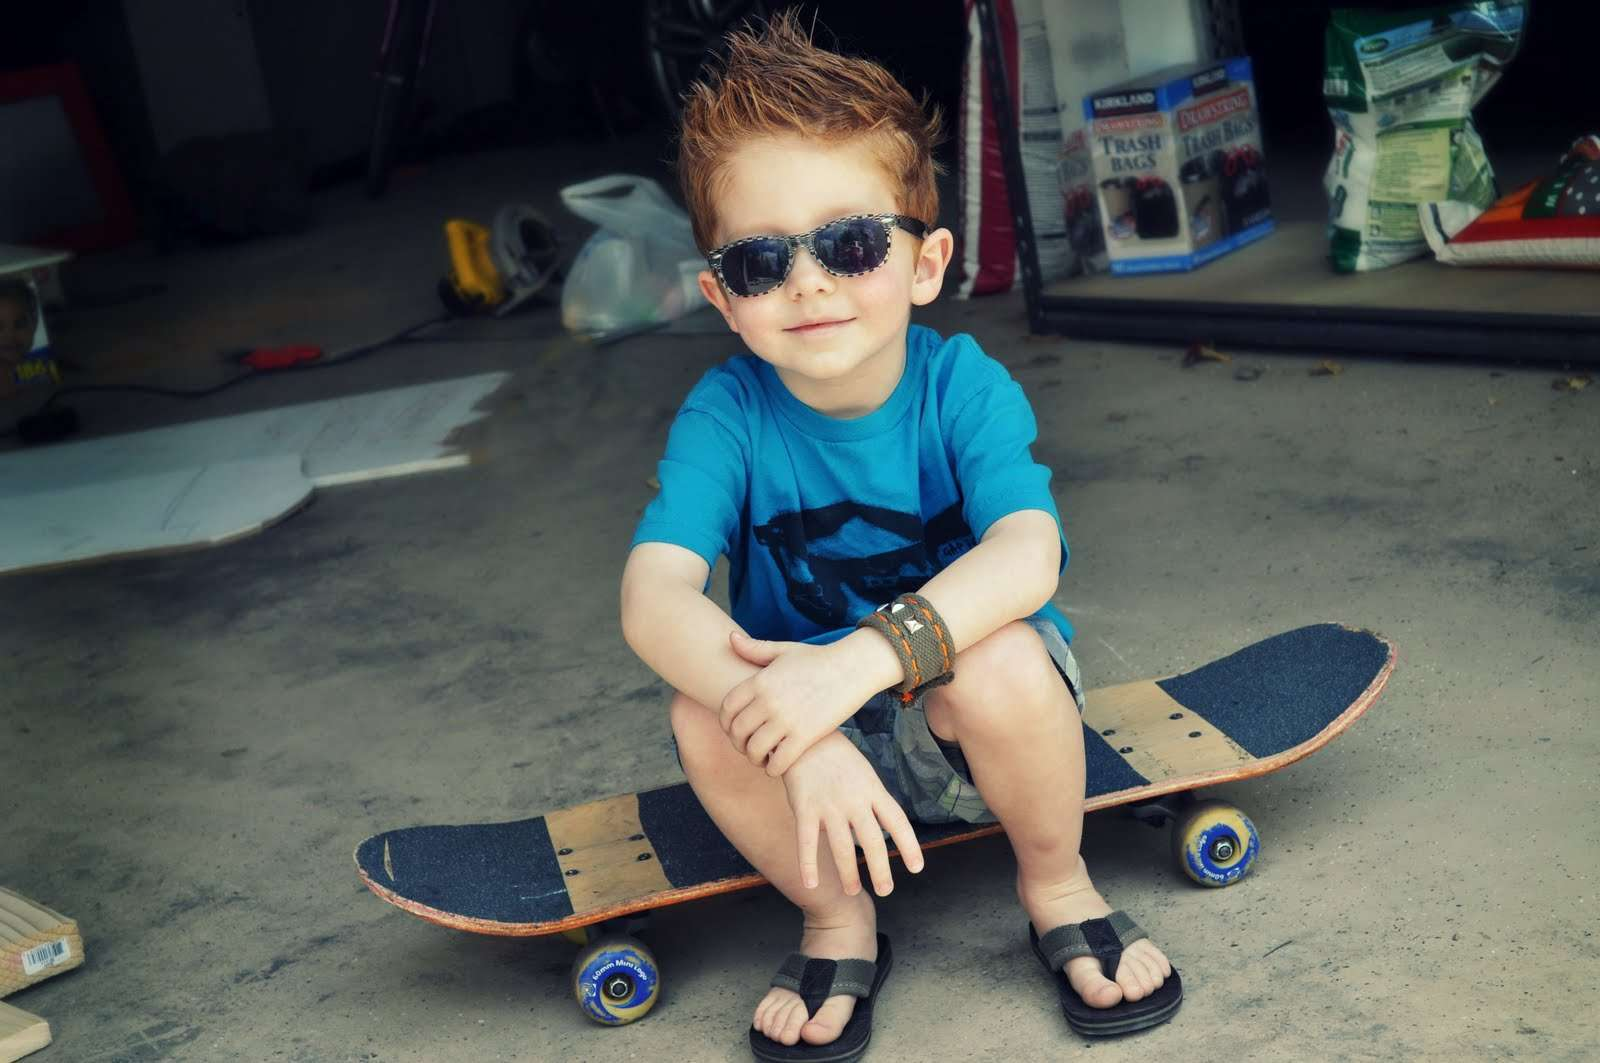 Stylish Boy Hd Wallpapers Wallpaper Cave